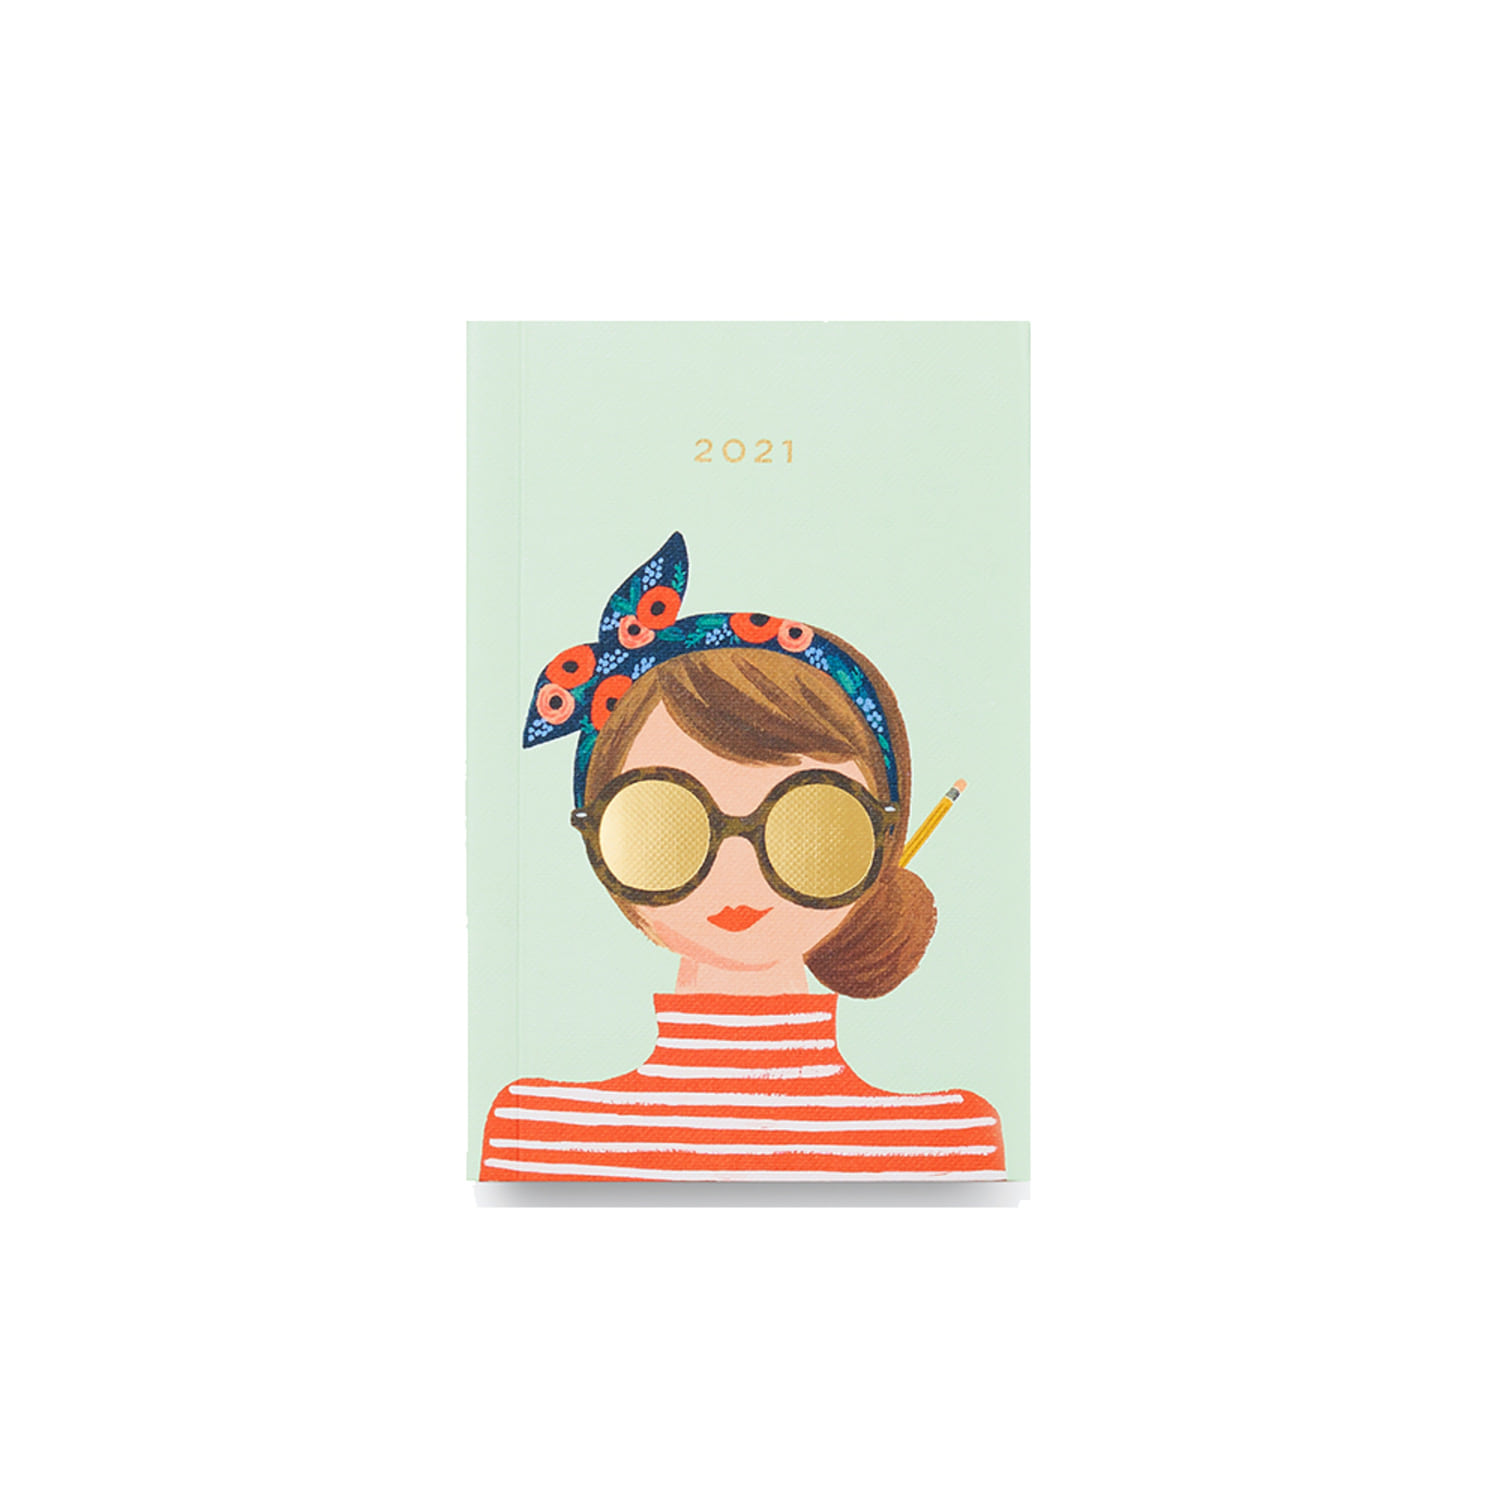 [Rifle Paper Co.] 2021 Hair Bow Pocket Planner